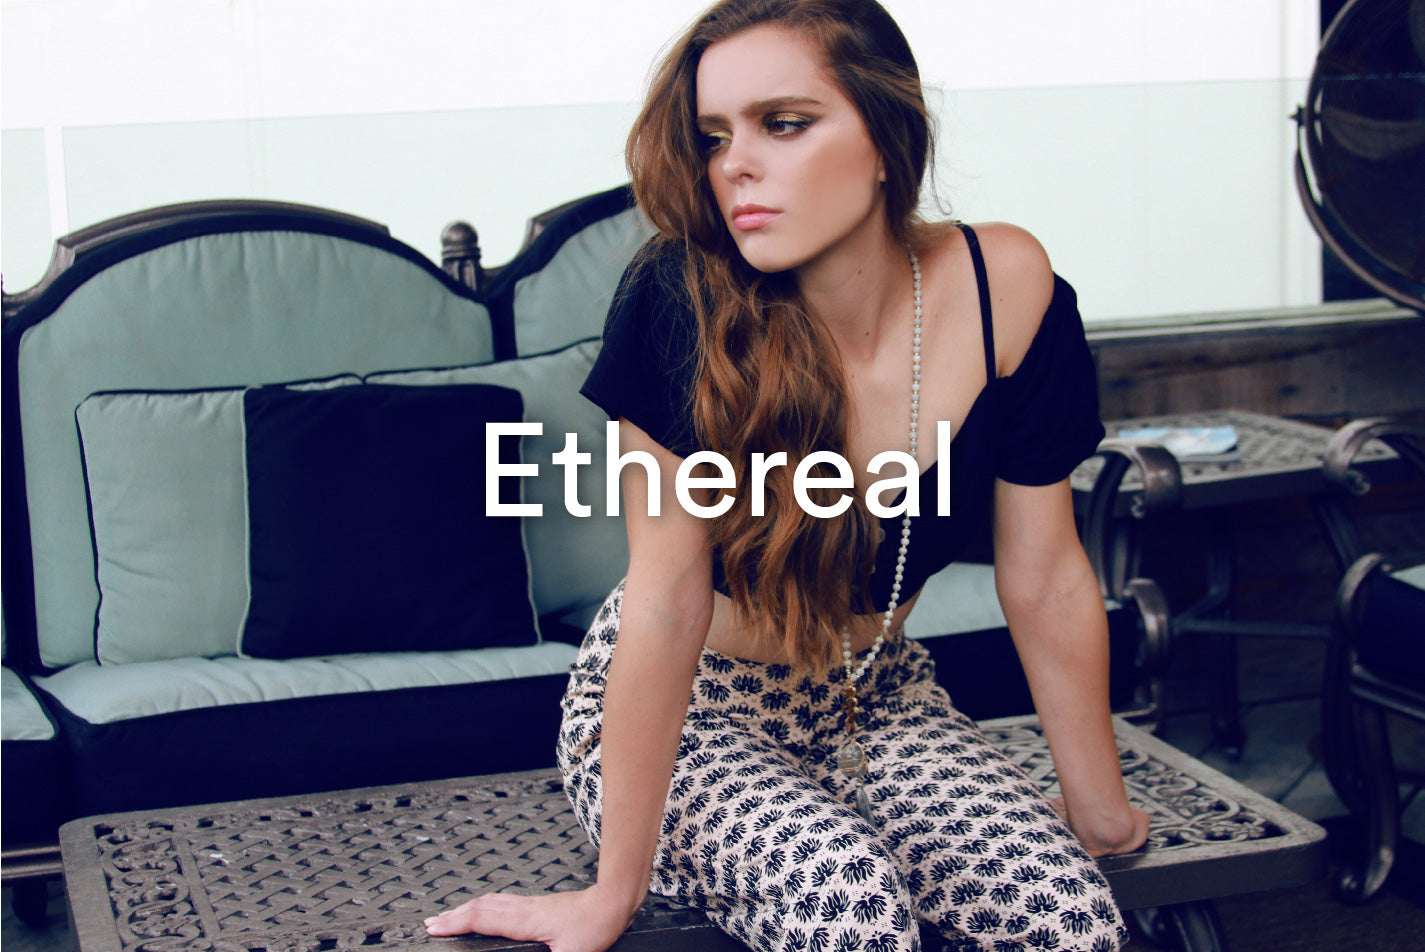 Collection: Ethereal